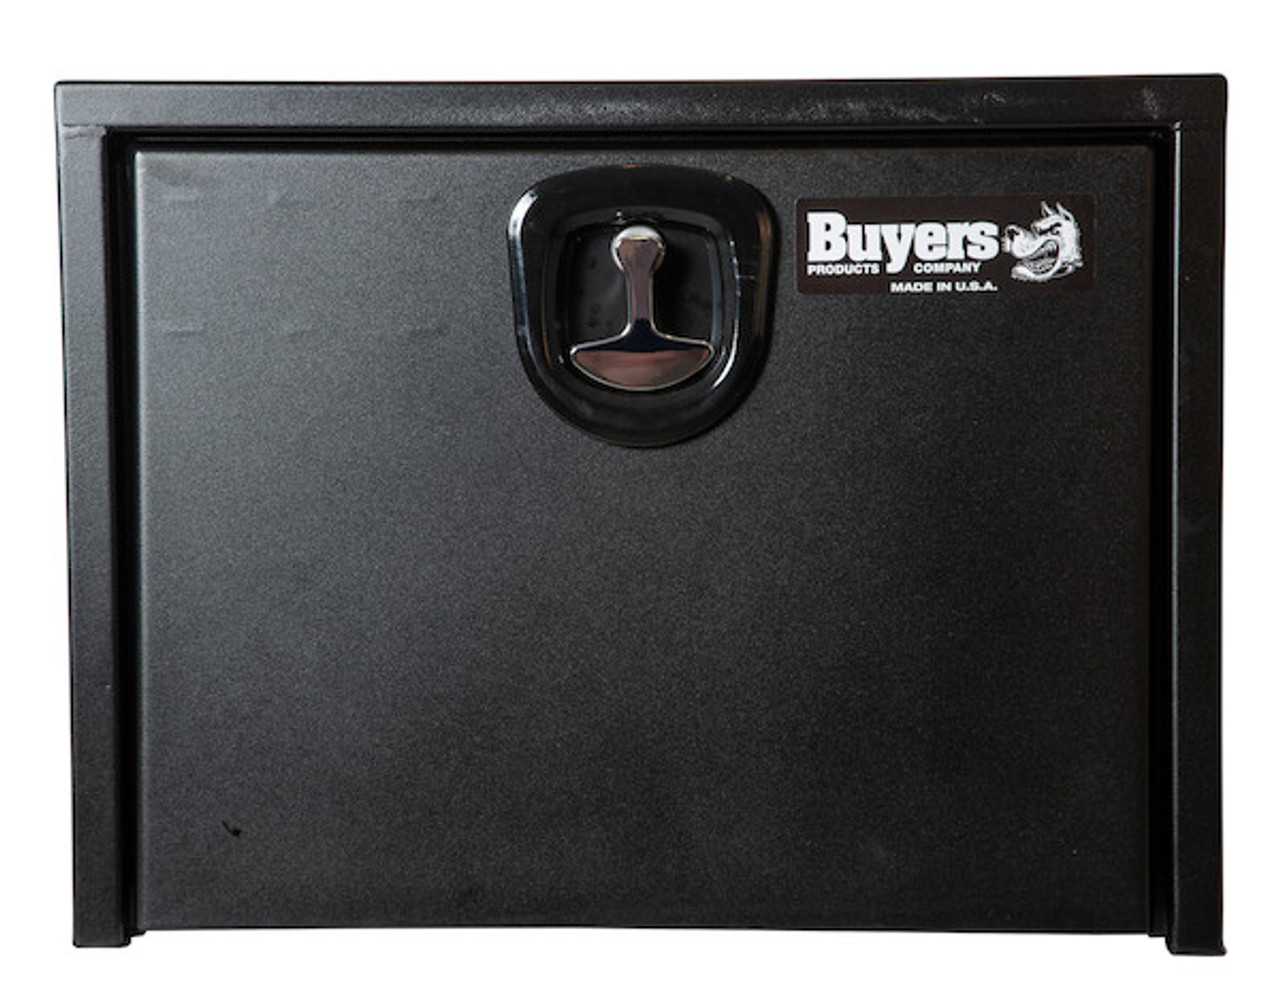 """1732500 BUYERS PRODUCTS TEXTURED MATTE BLACK STEEL UNDERBODY TRUCK TOOLBOX WITH 3-POINT LATCH 18""""Hx18""""Dx24""""W Picture # 3"""